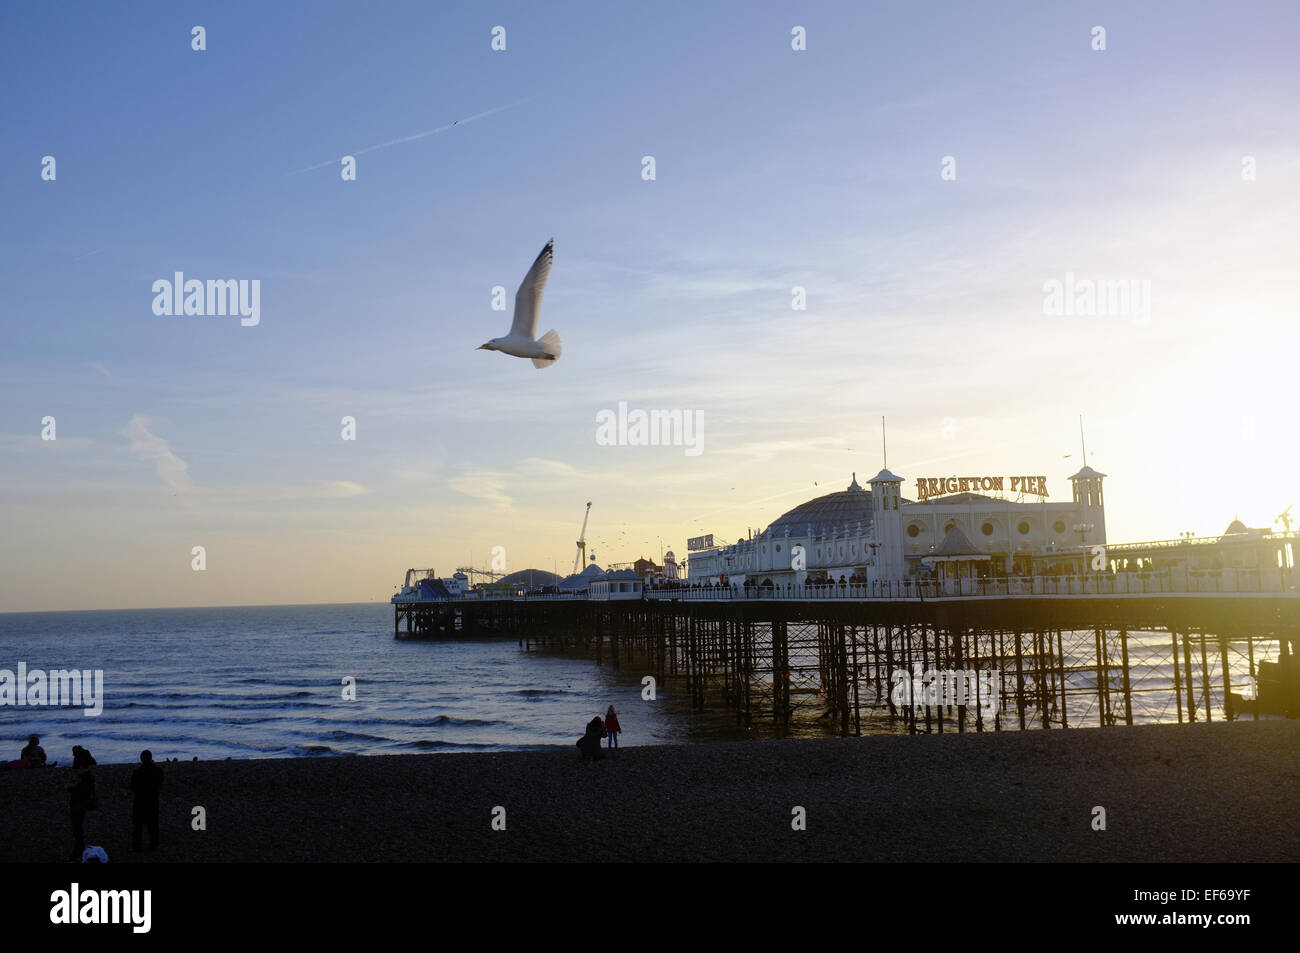 A seagull flies past Brighton pier at sunset. - Stock Image